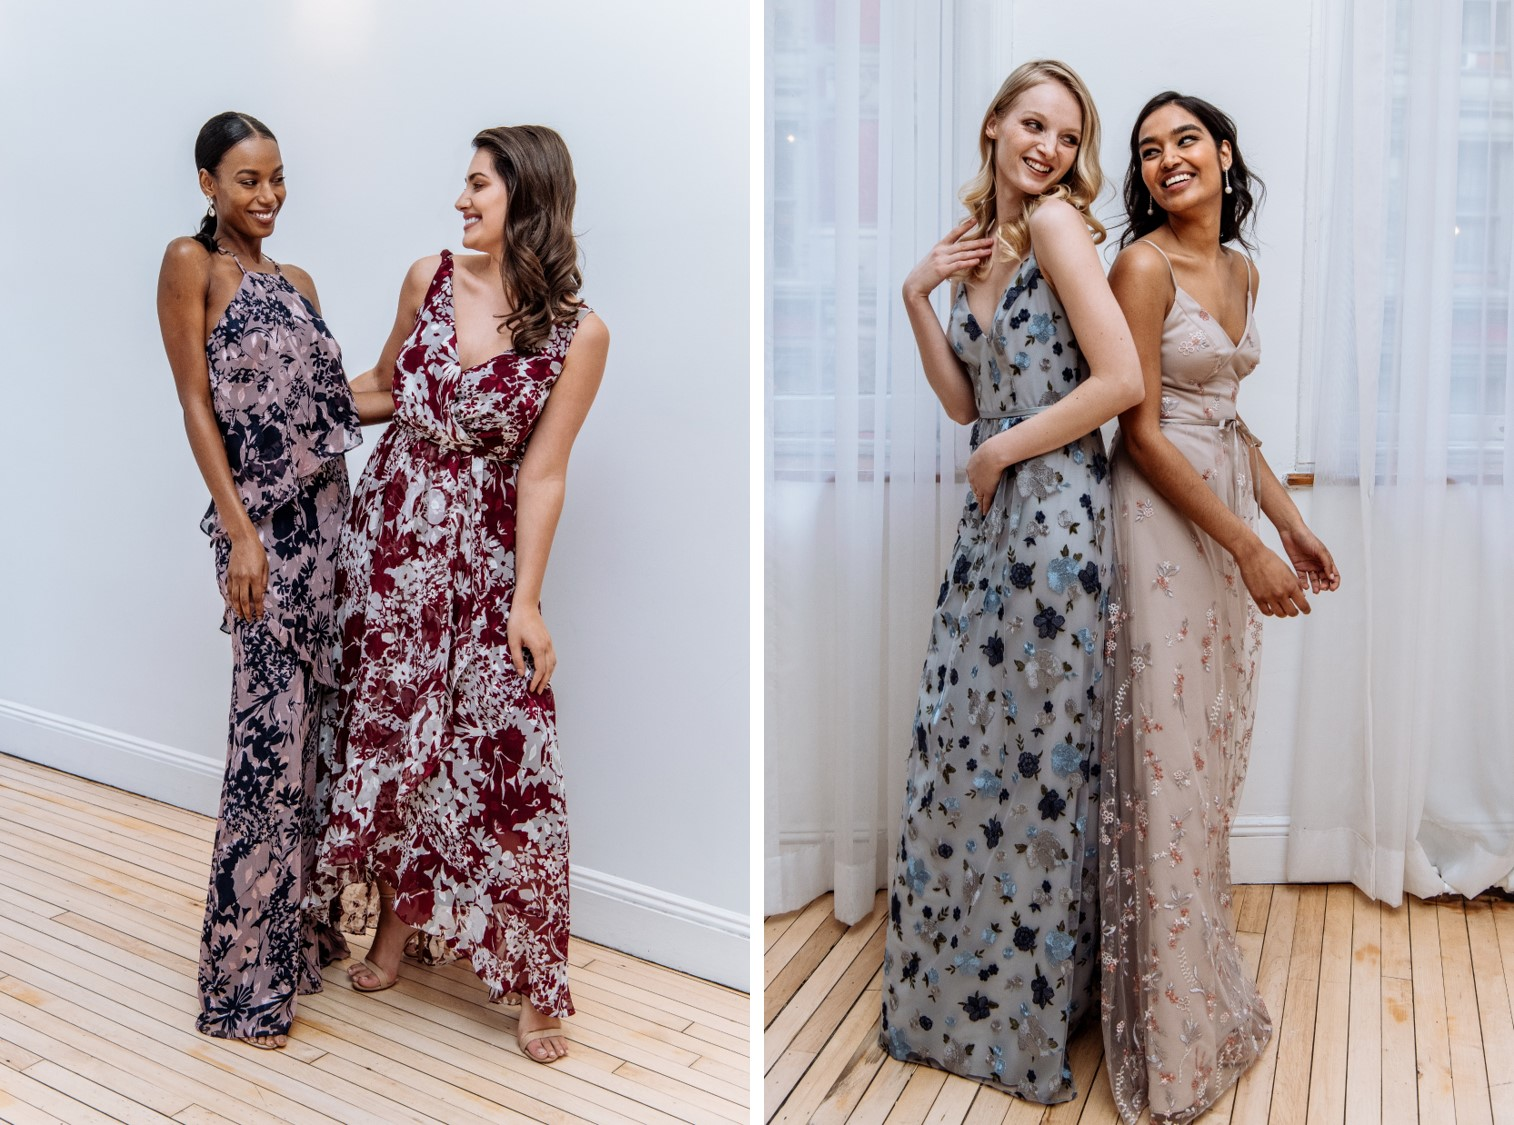 Feminine florals for bridesmaids continues to be a growing trends See more Fall 2018 bridesmaid trends on the David's Bridal blog!